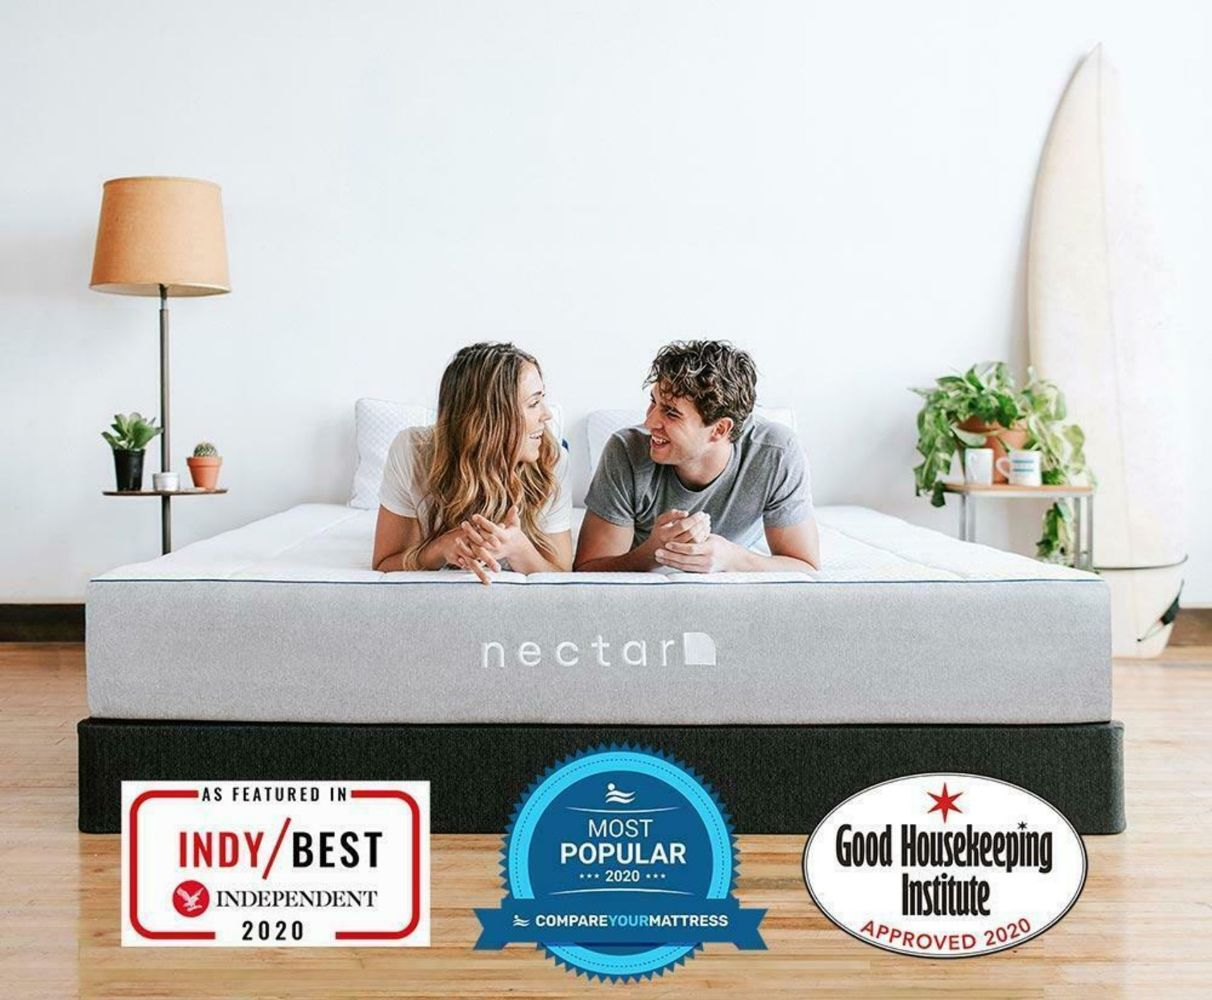 *MEGA MATTRESS & HEADBOARDS SALE* WITH EX-DISPLAY CARPET RIGHT HEADBOARDS & REFURBISHED NECTAR MATTRESSES 5FT & 6FT ONLY